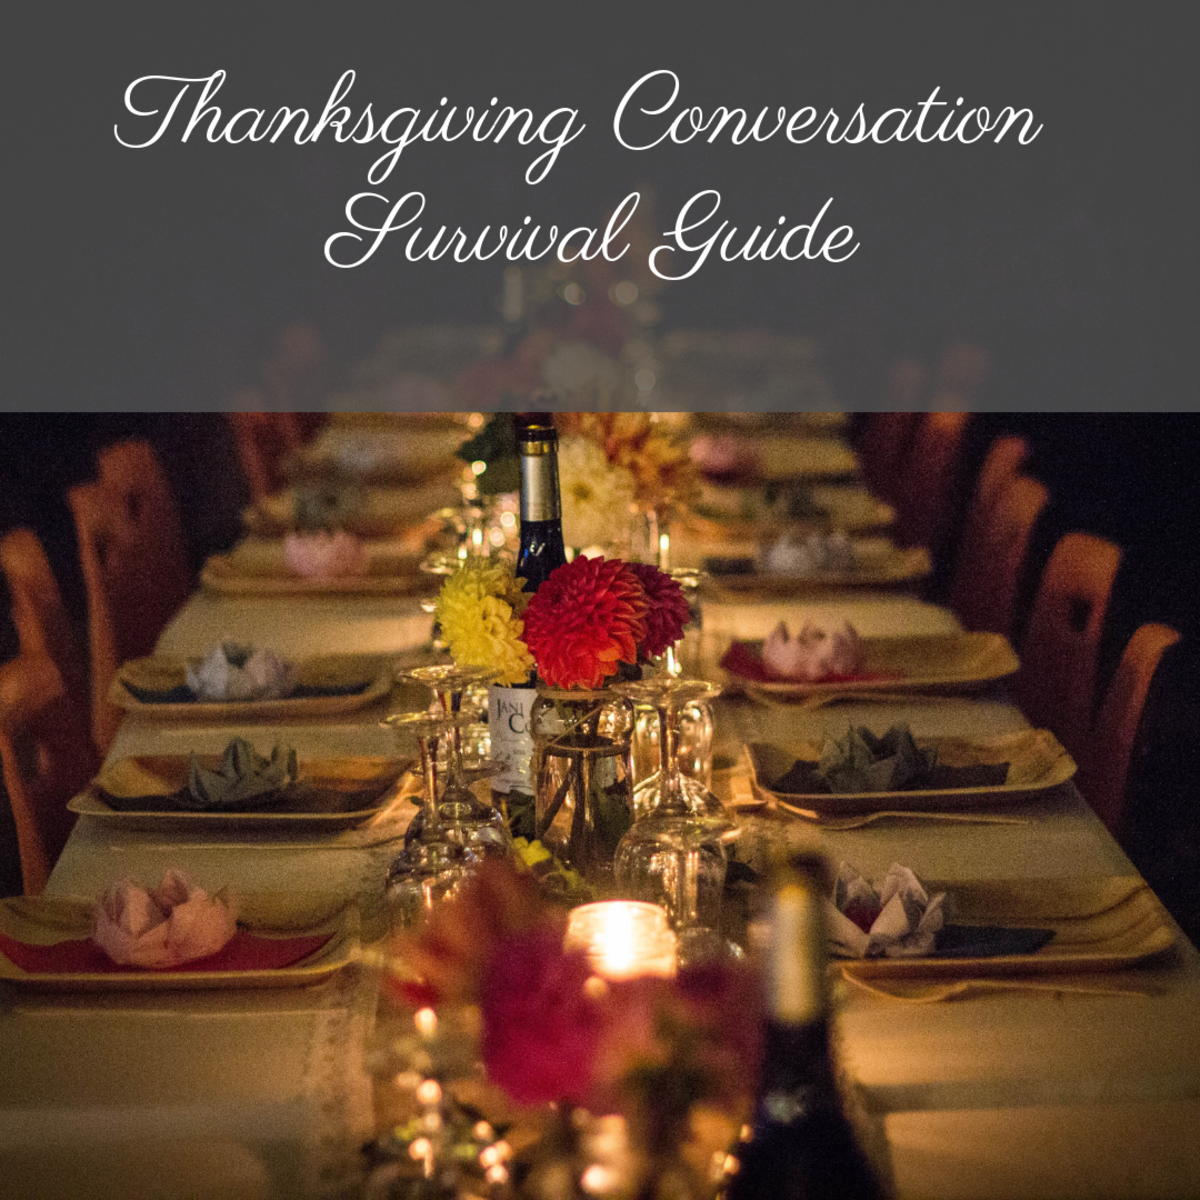 These conversations could save your thanksgiving!